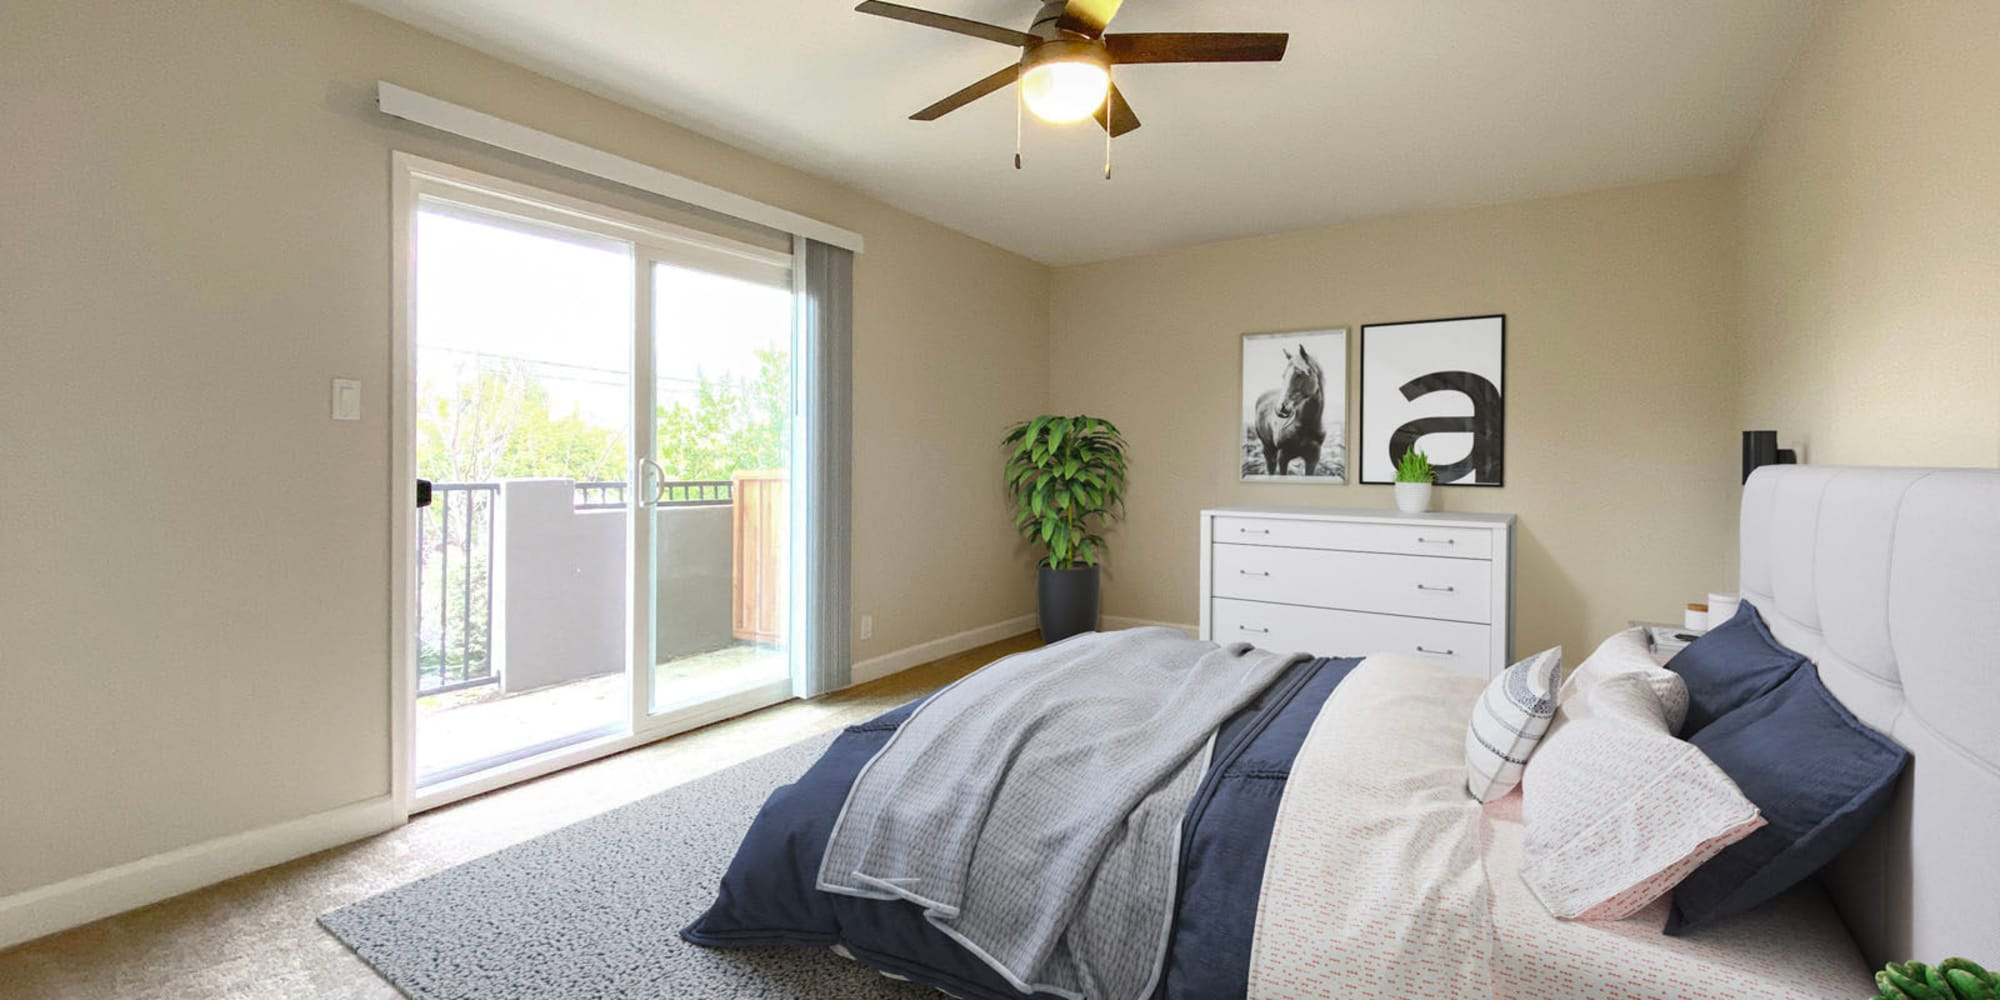 Model apartment's bedroom with a ceiling fan and private balcony outside at Pleasanton Heights in Pleasanton, California